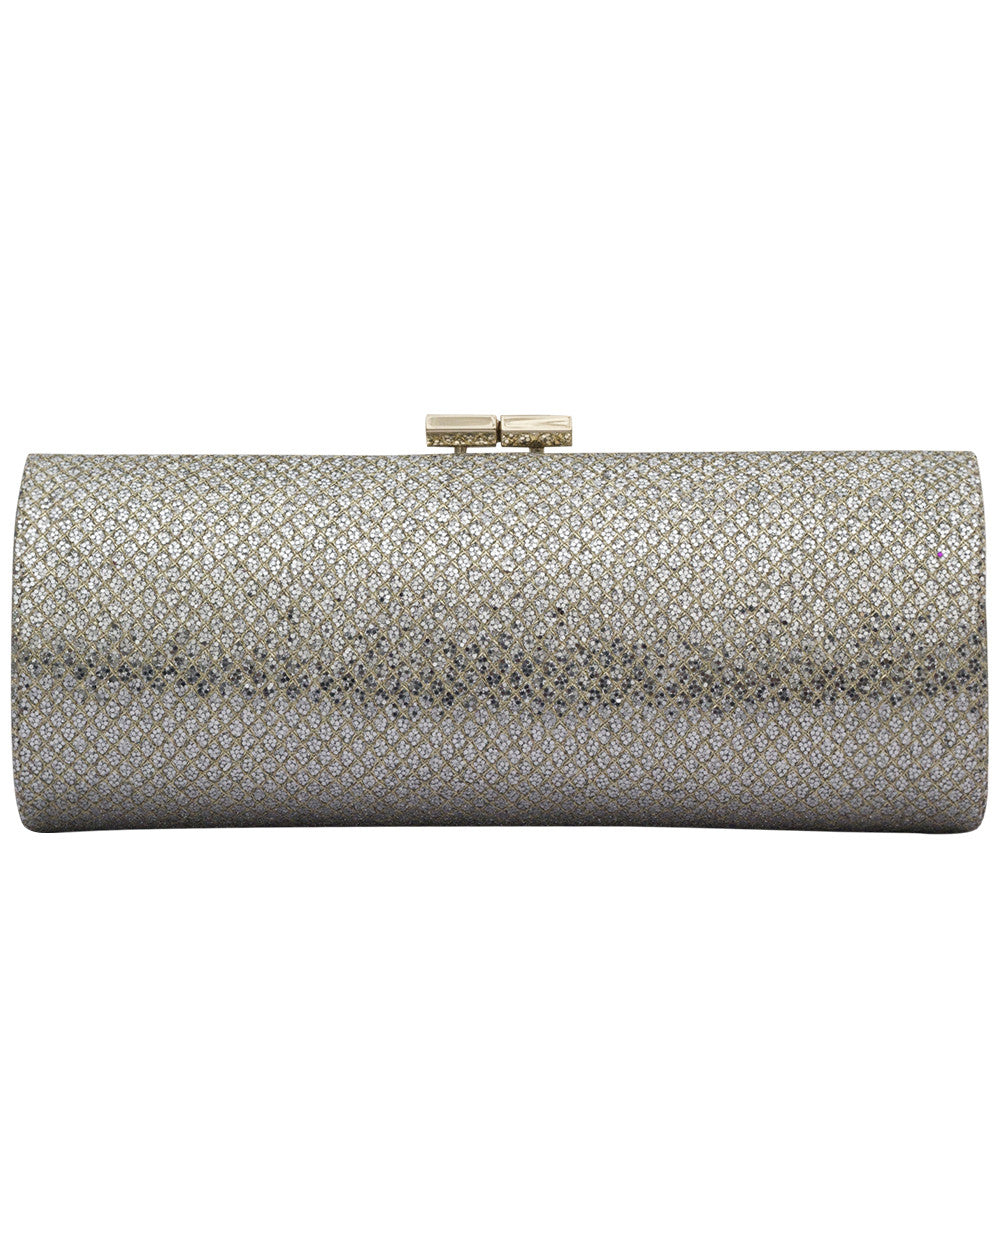 Pre-owned - Glitter clutch bag Jimmy Choo London 3fQAW